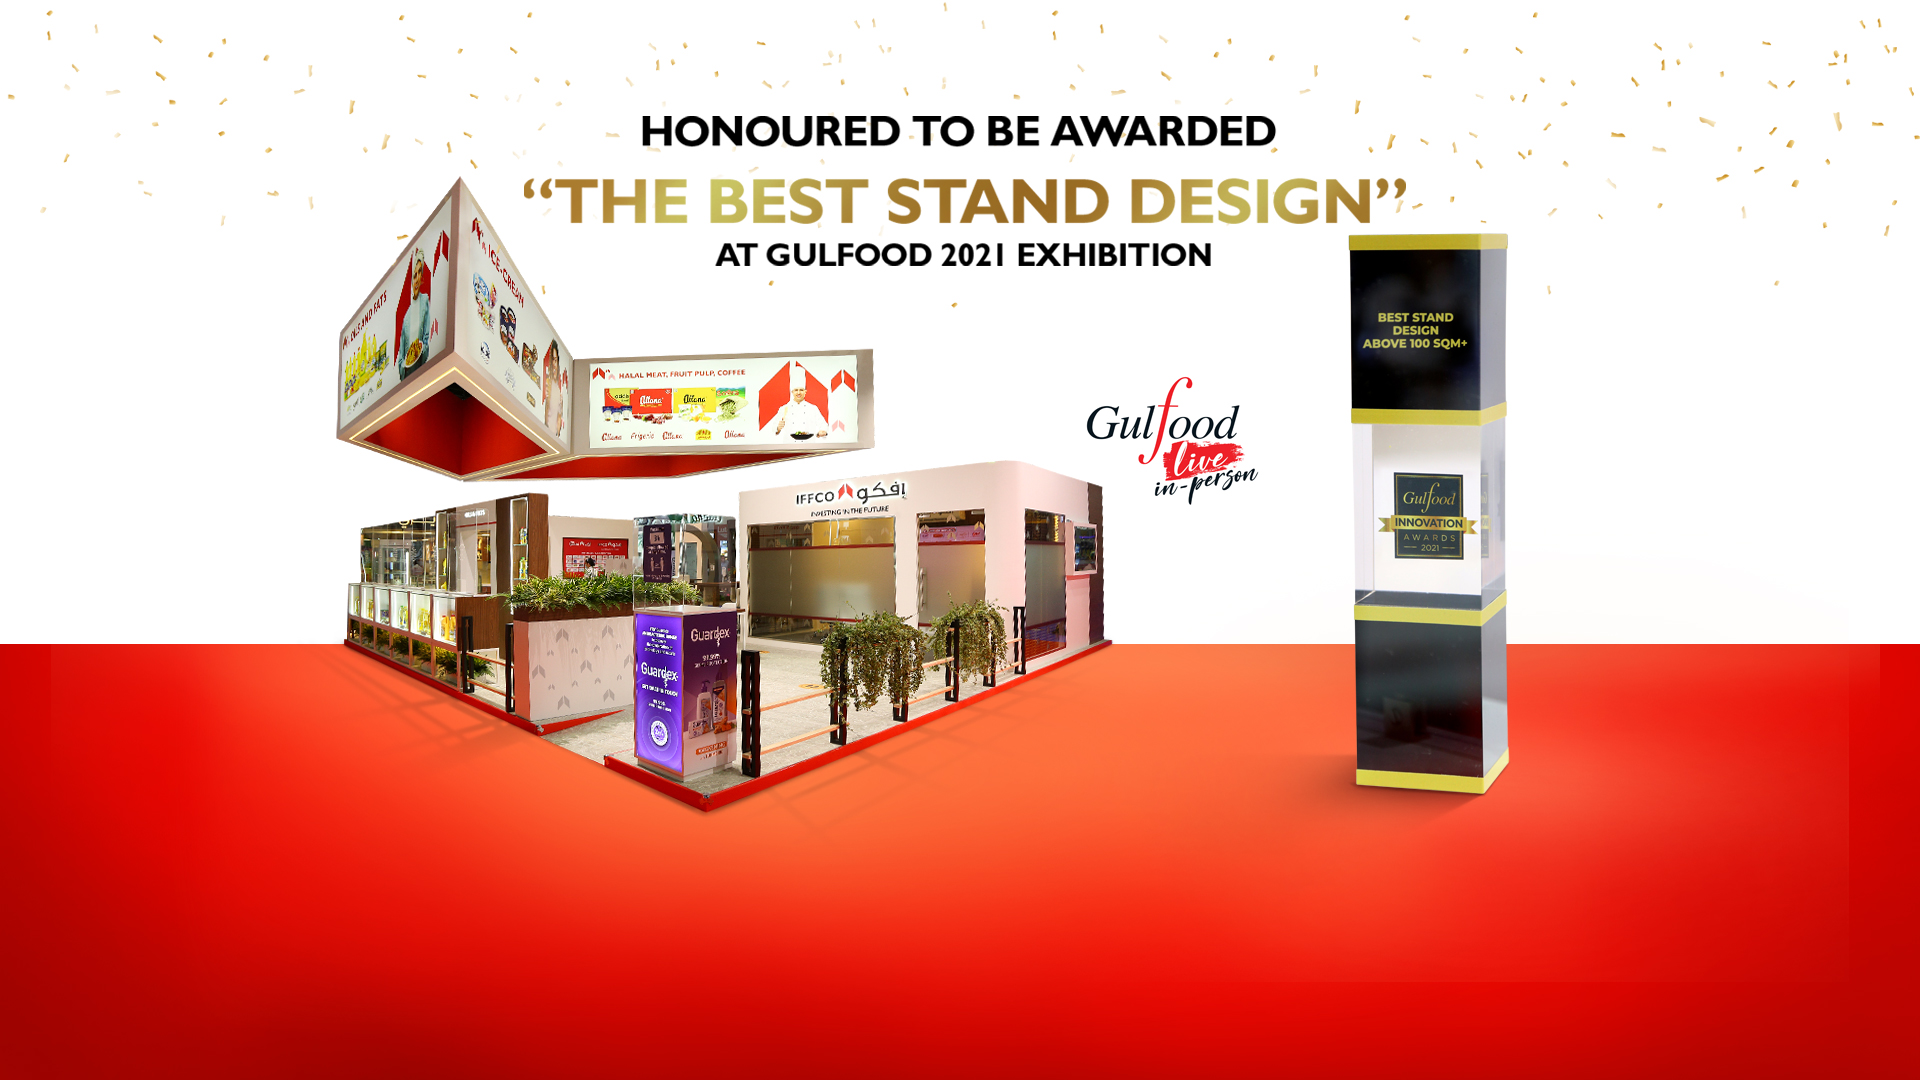 IFFCO honoured with the 'Best Stand Award' at the Gulfood 2021 Exhibition.